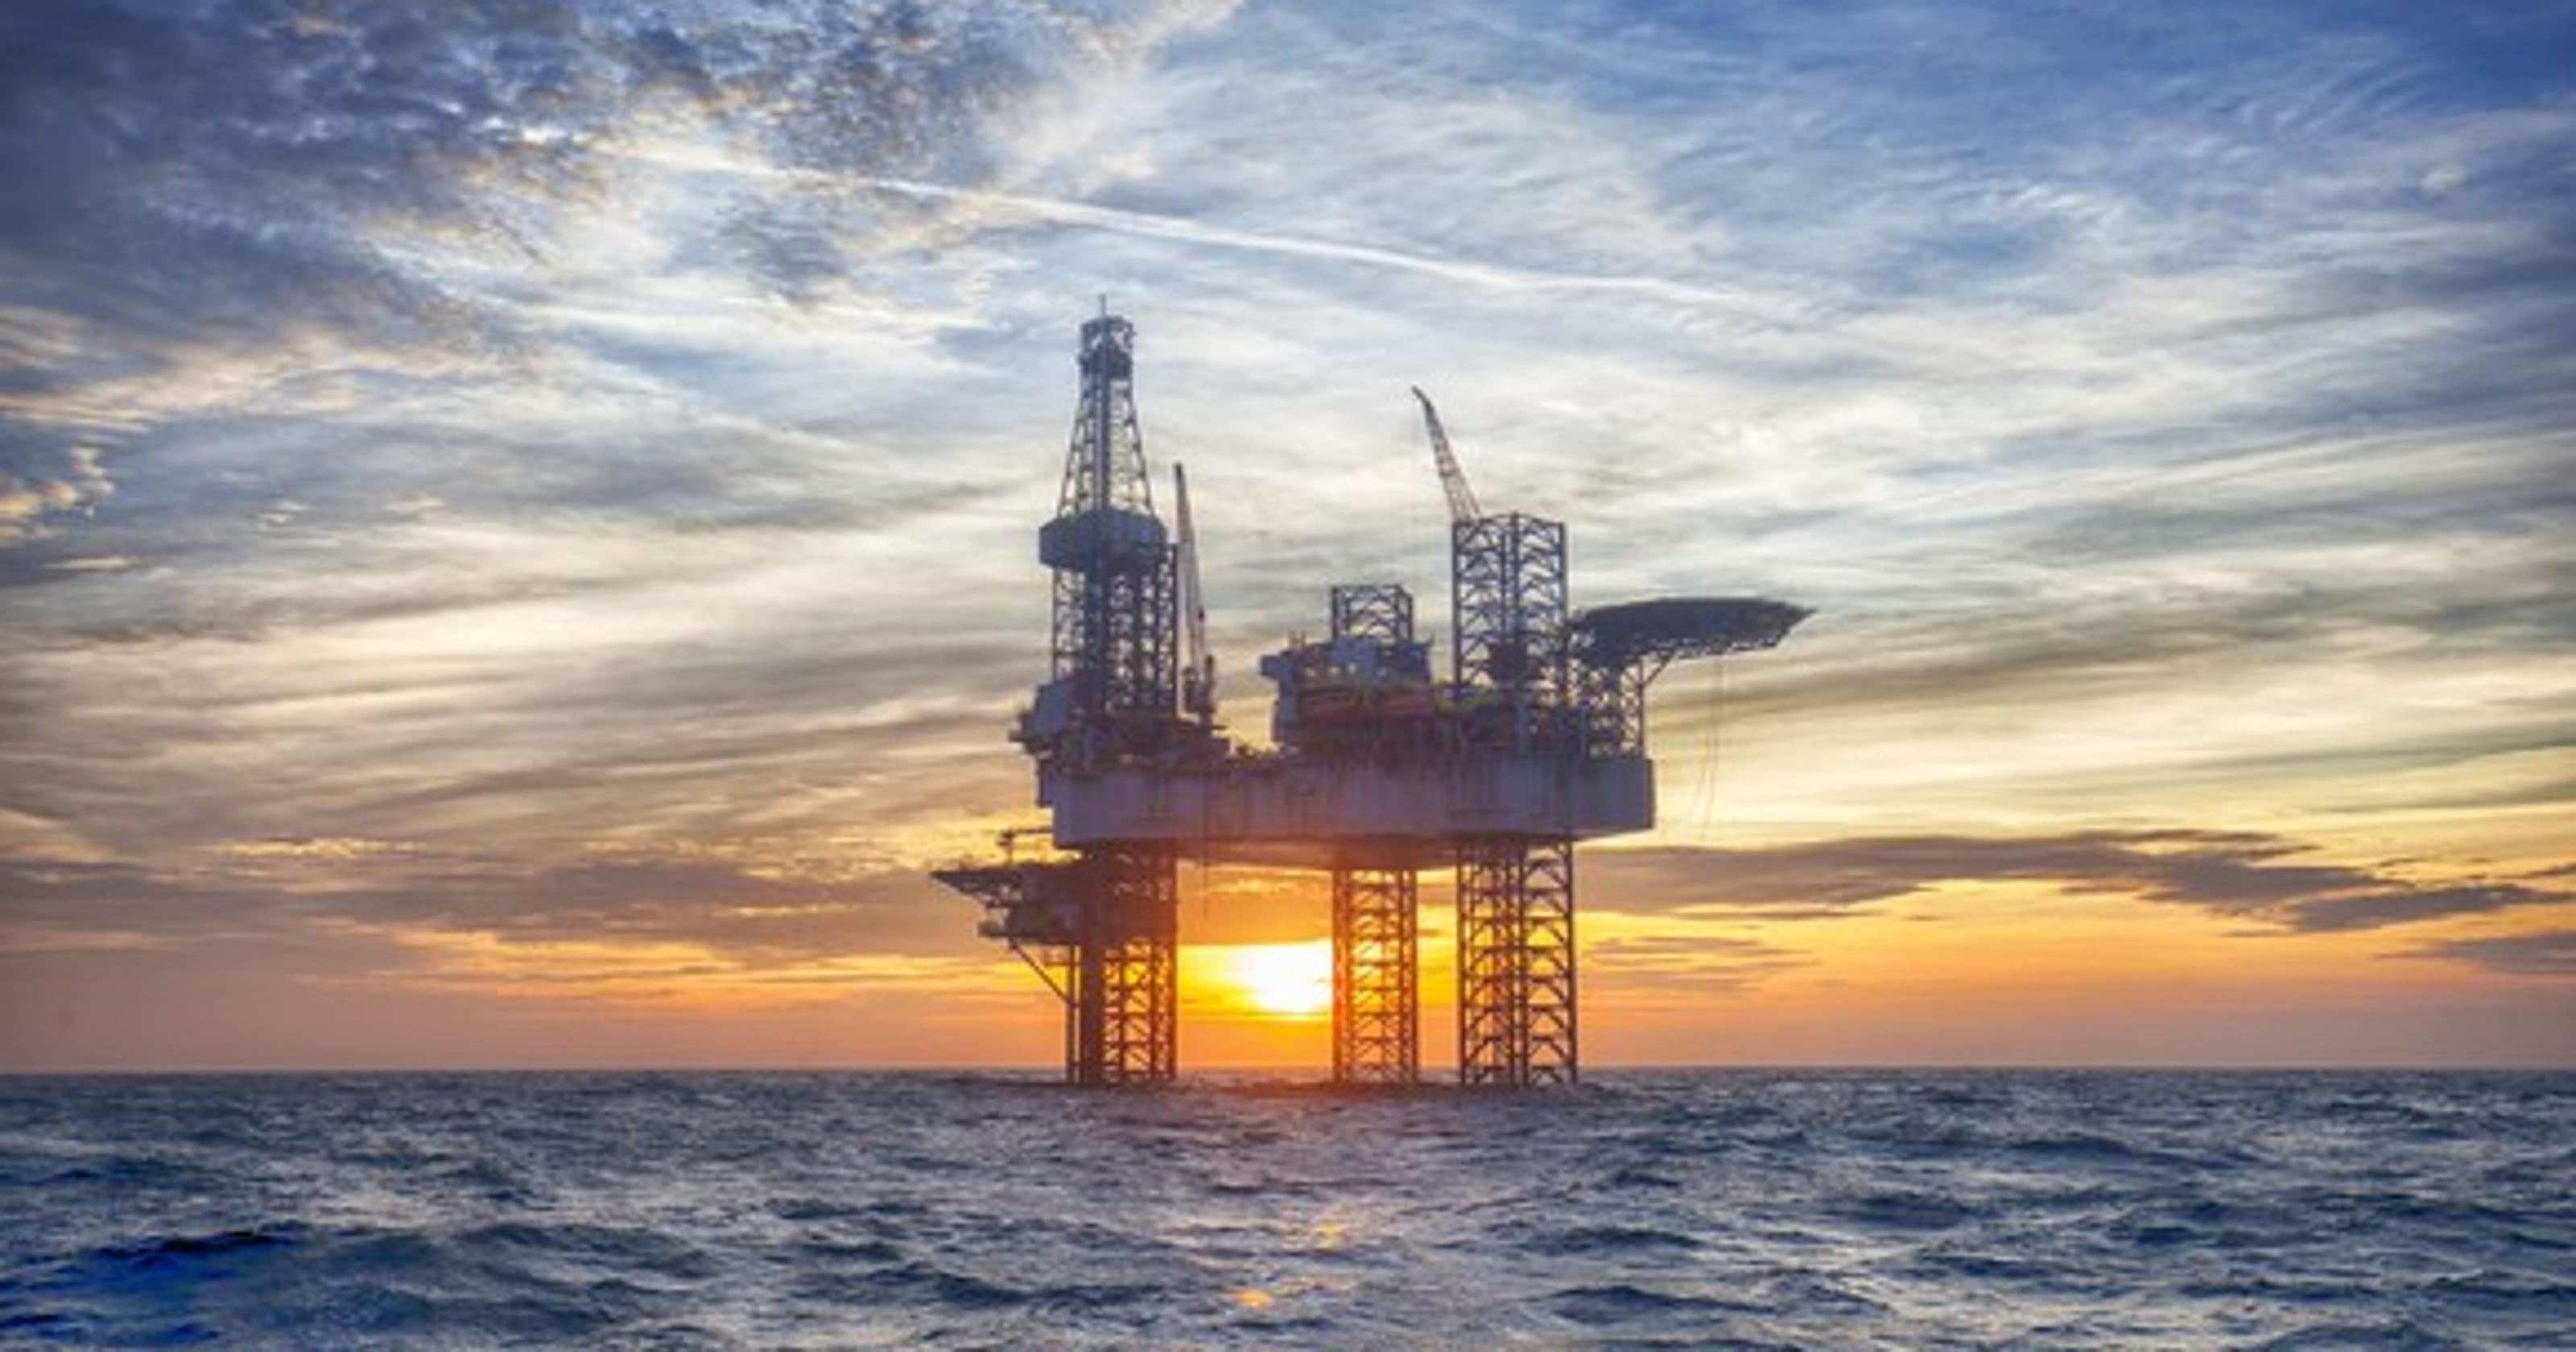 America must welcome offshore drilling